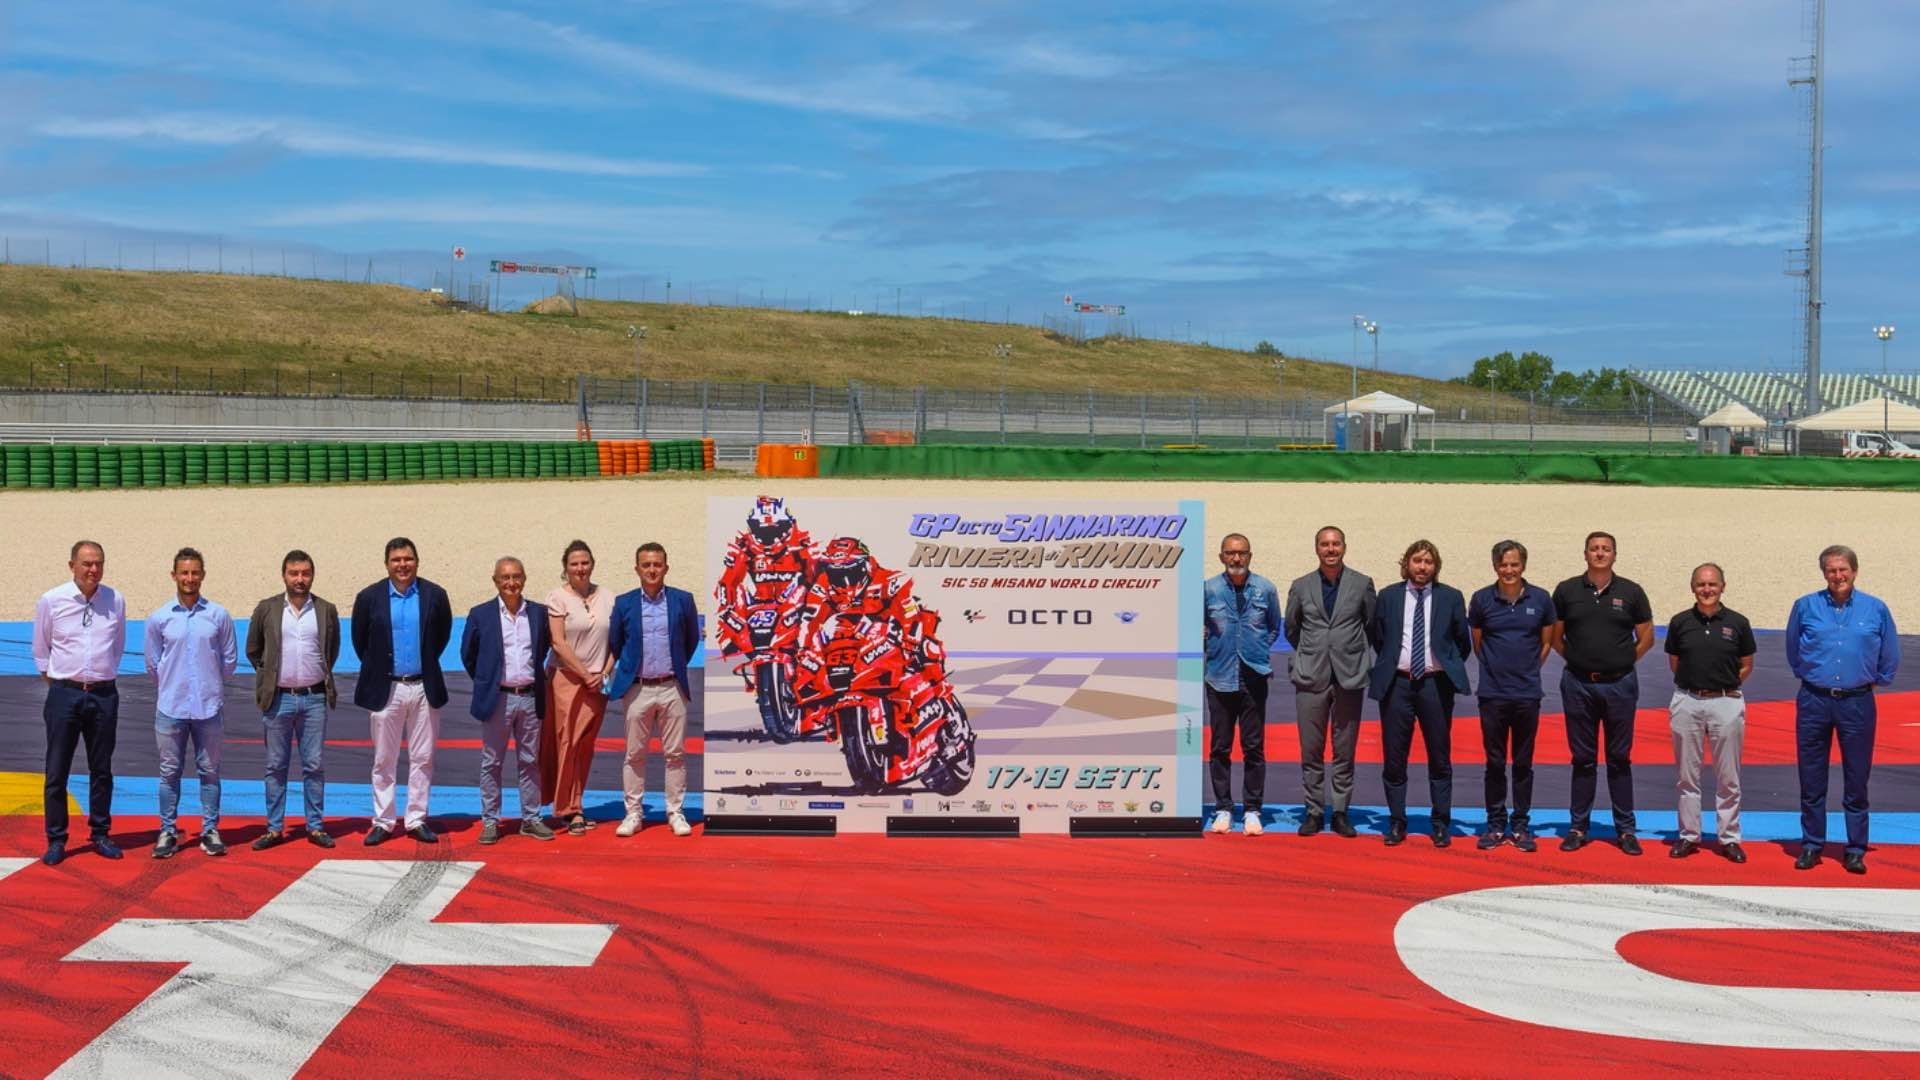 MotoGP returns to Misano. The promotion of the great event starts from the Official Poster.